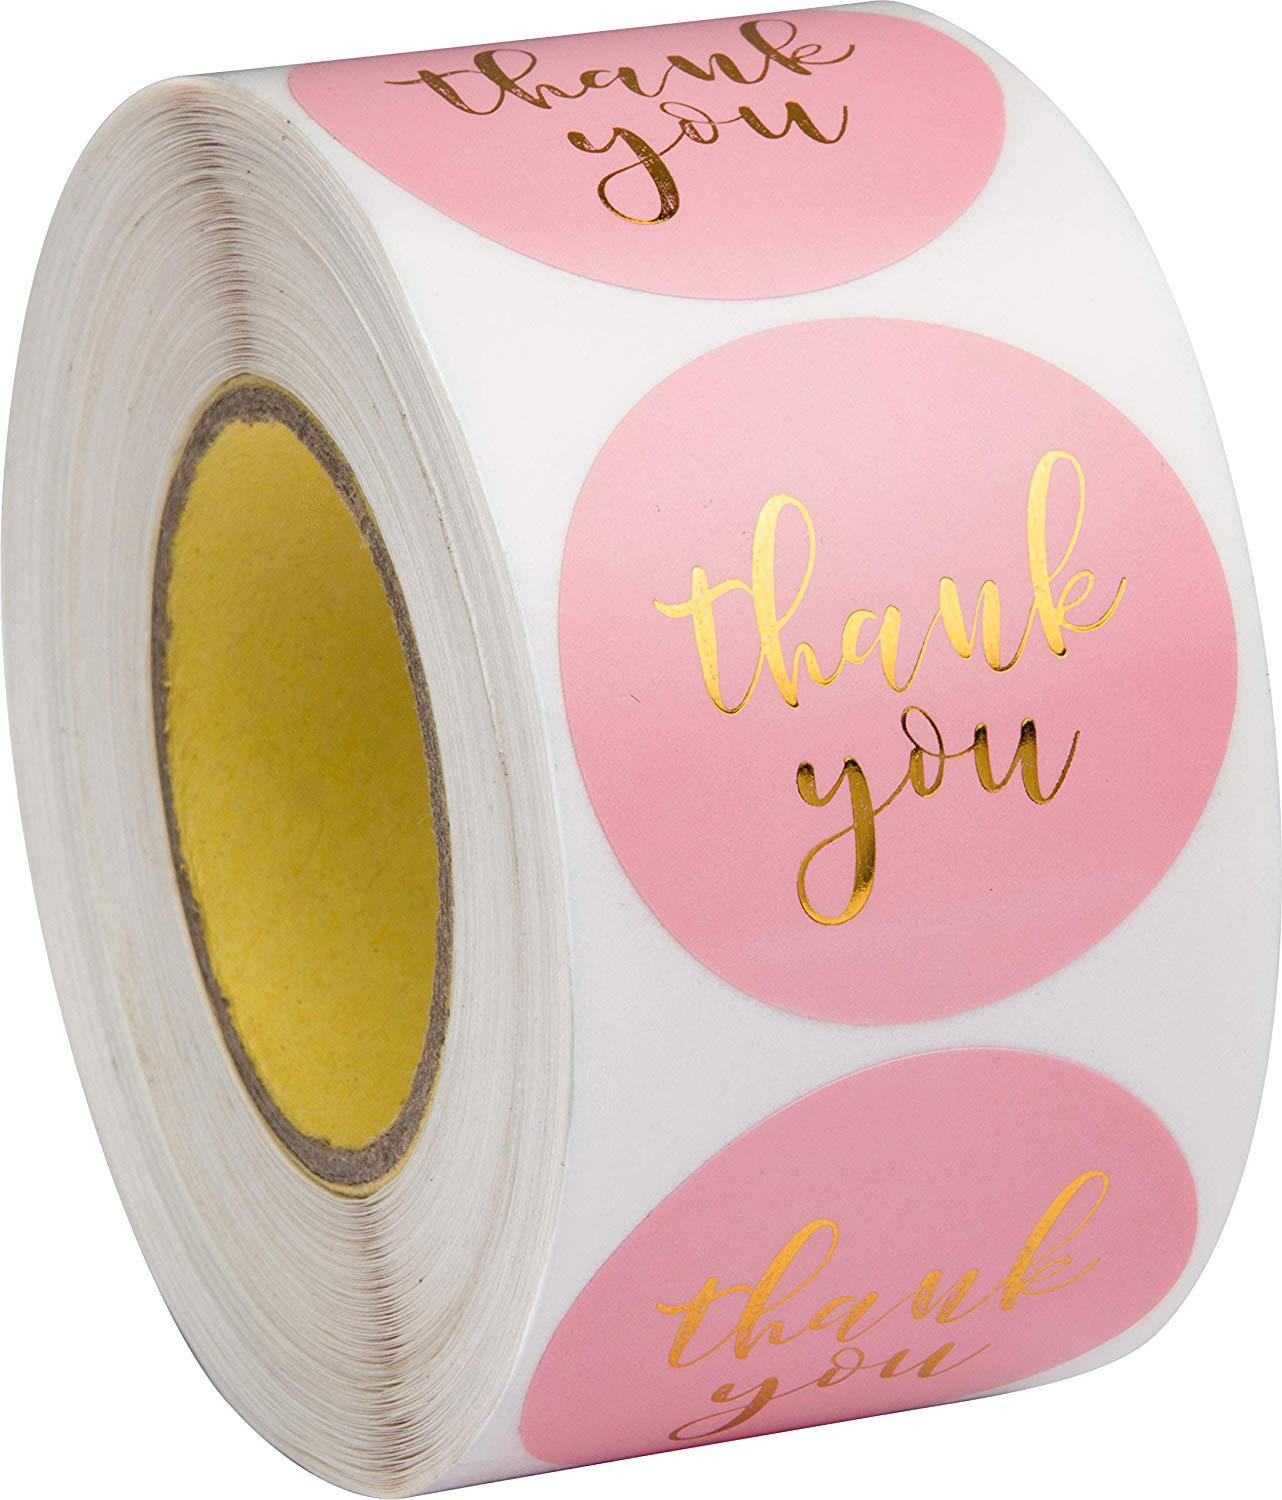 Foil Pink Thank You Sticker For Wedding Party Favors 1inch 500pcs Scrapbooking Roll Labels Stationery Sticker